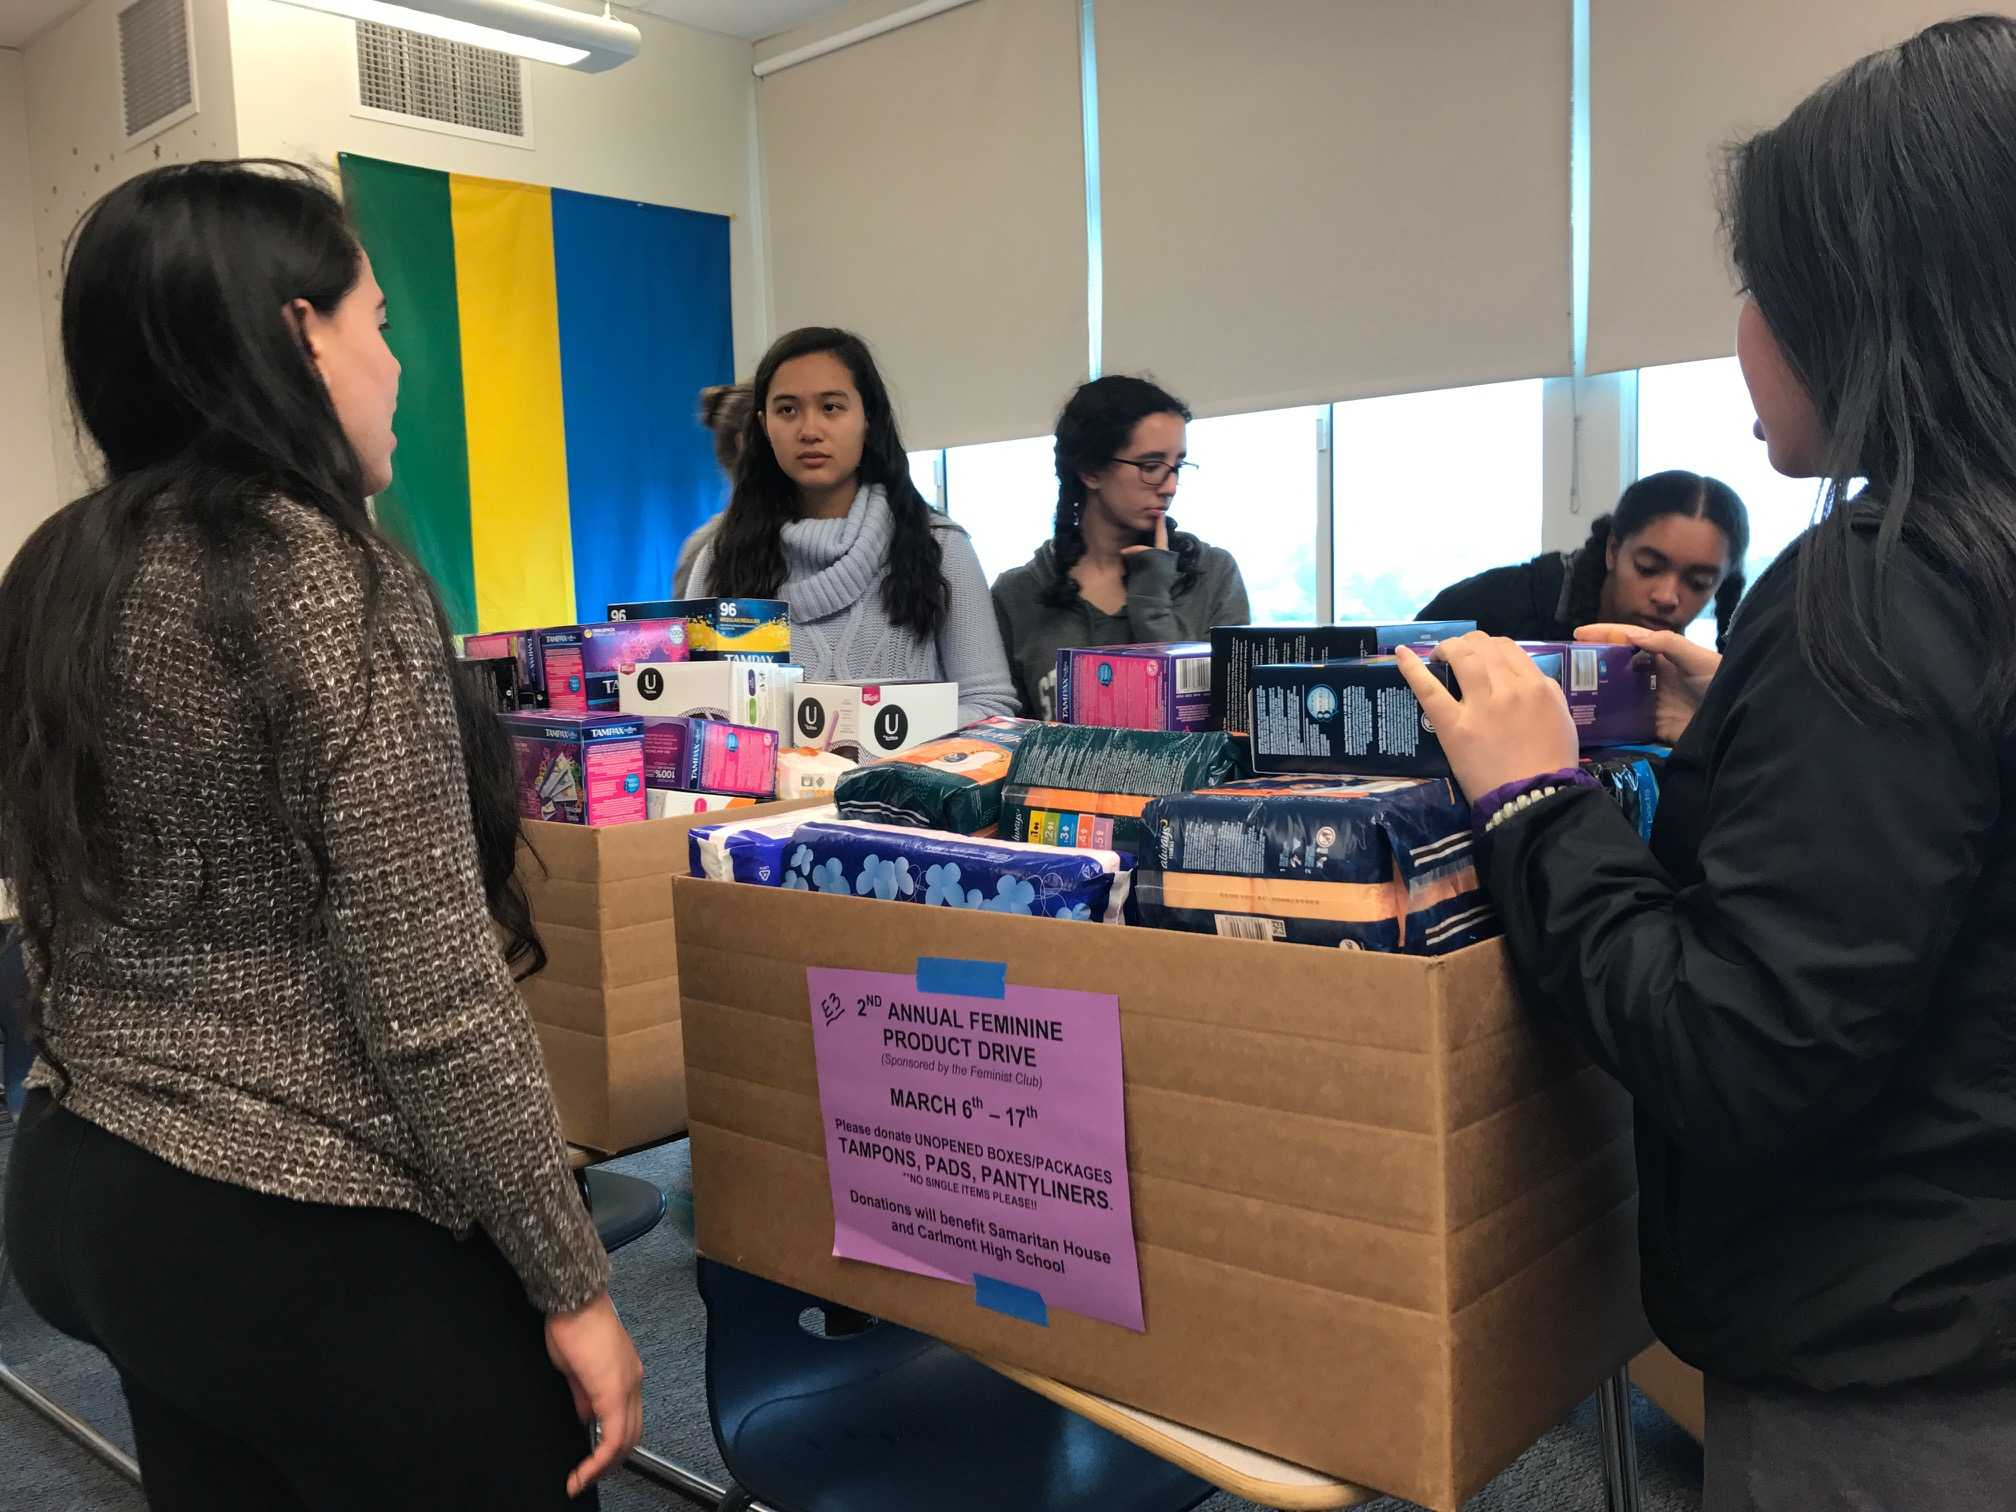 Feminist Club presidents, Sydney Pon and Evelyn Lawrence, meet at lunch on Friday March 24 at lunch to work on the Feminine Product Drive, along with a few other members.